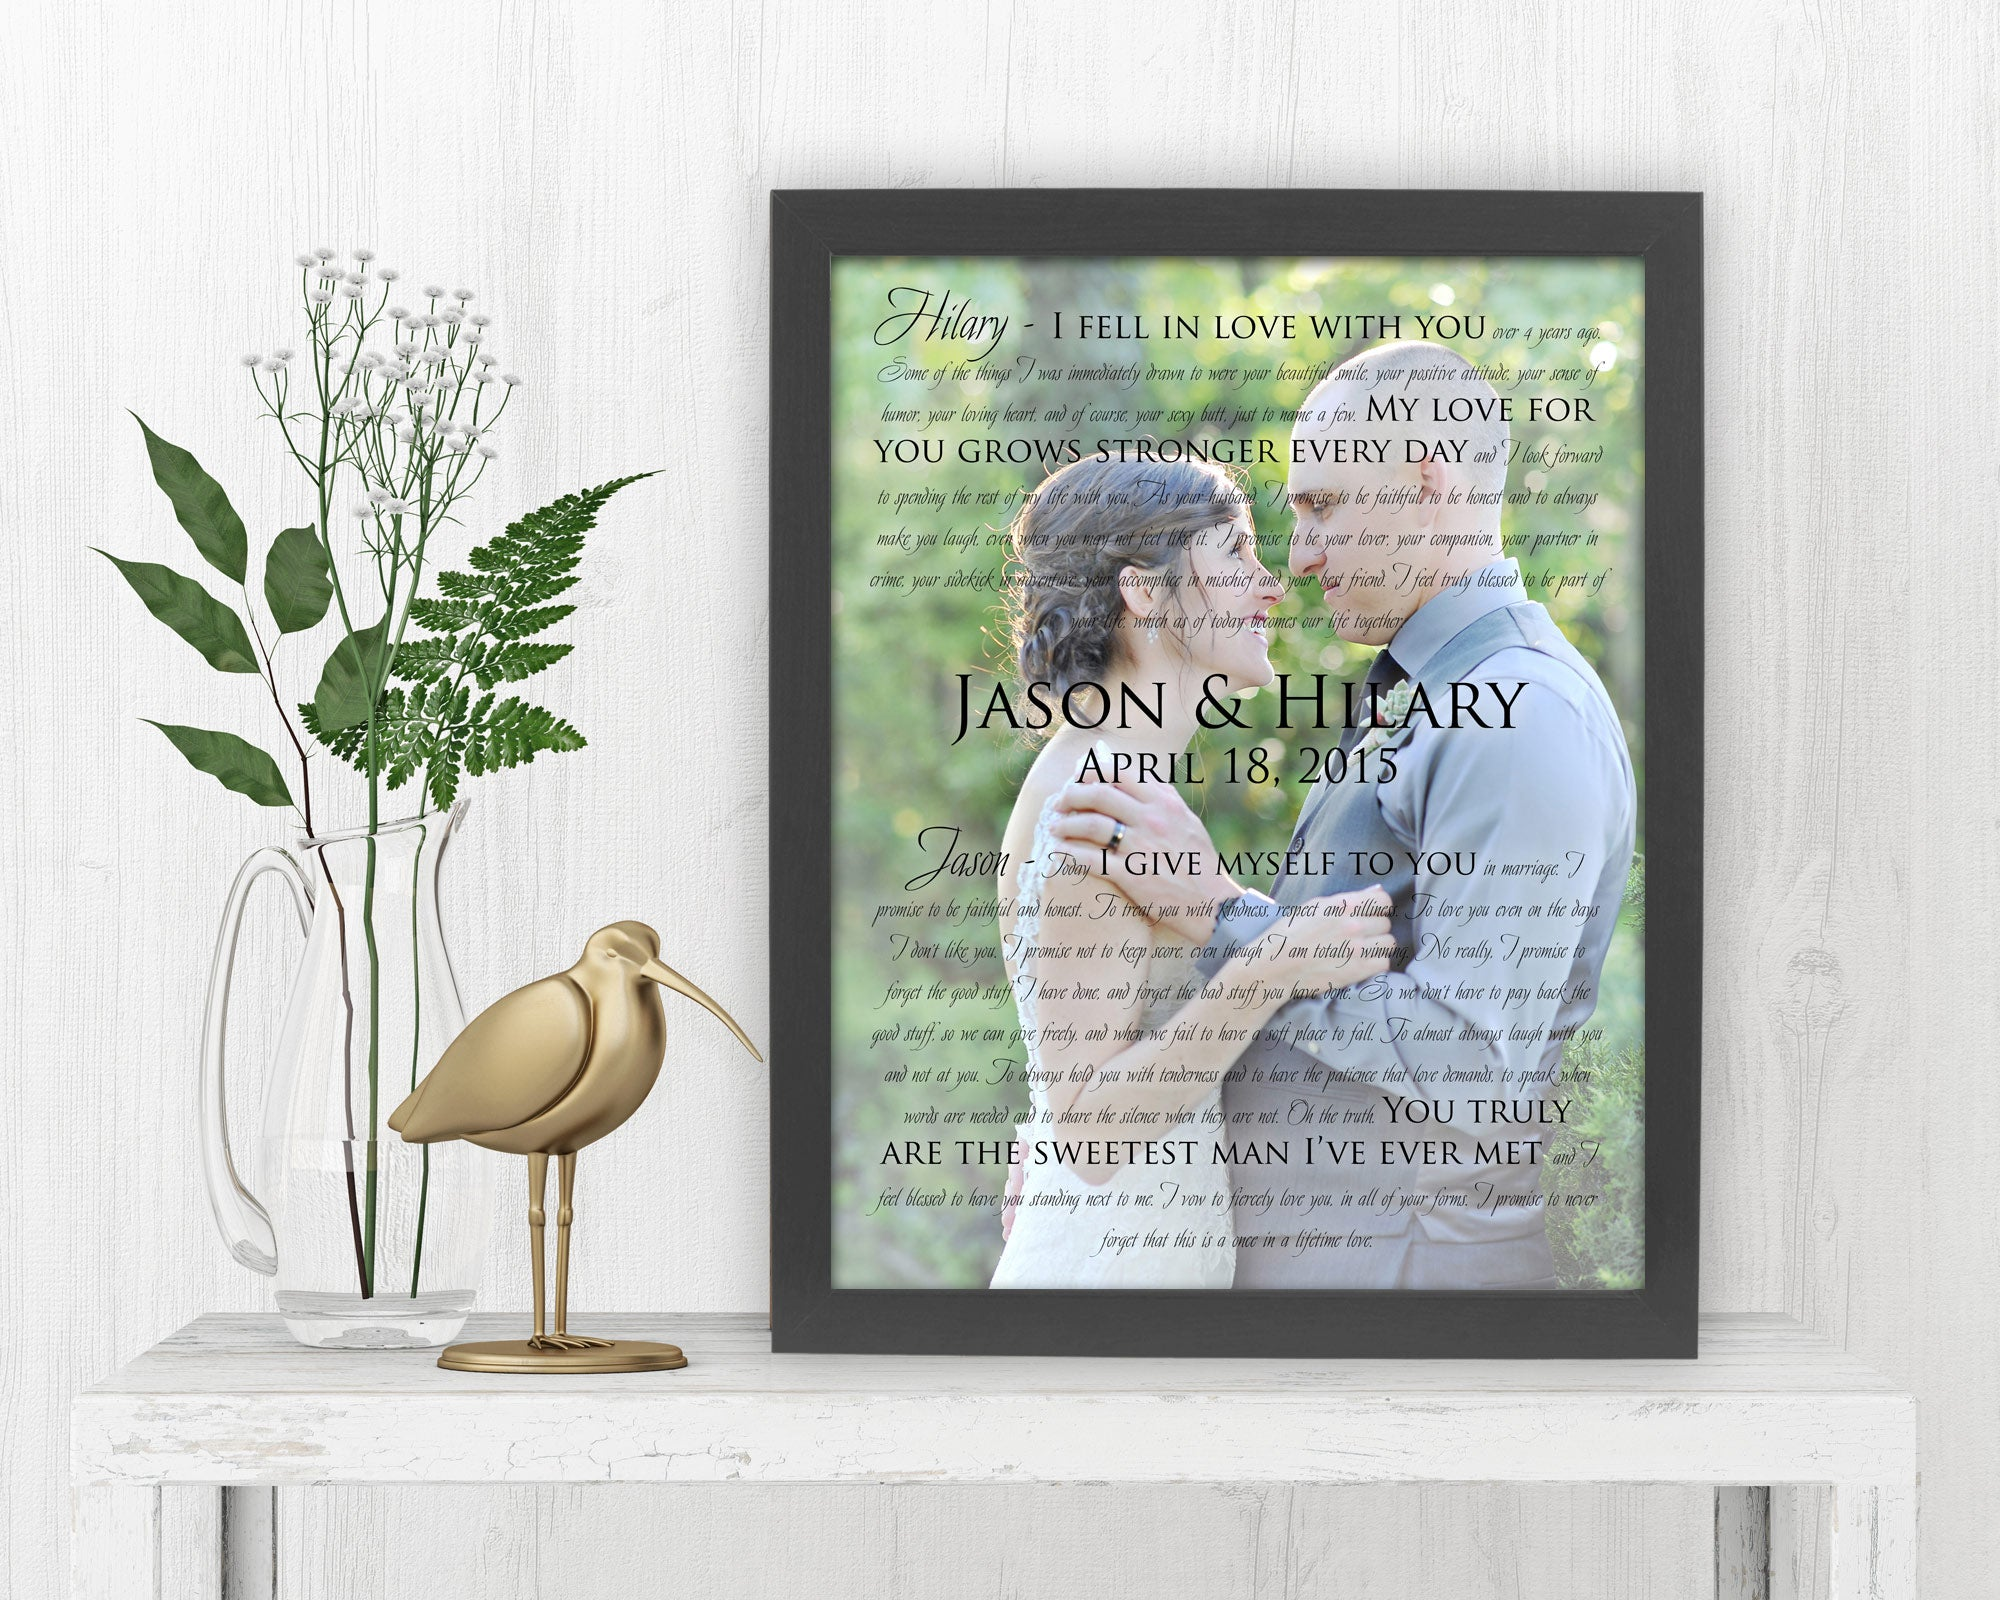 Framed Photo with Song Lyrics - Fine art and canvas personalized anniversary and inspirational gifts